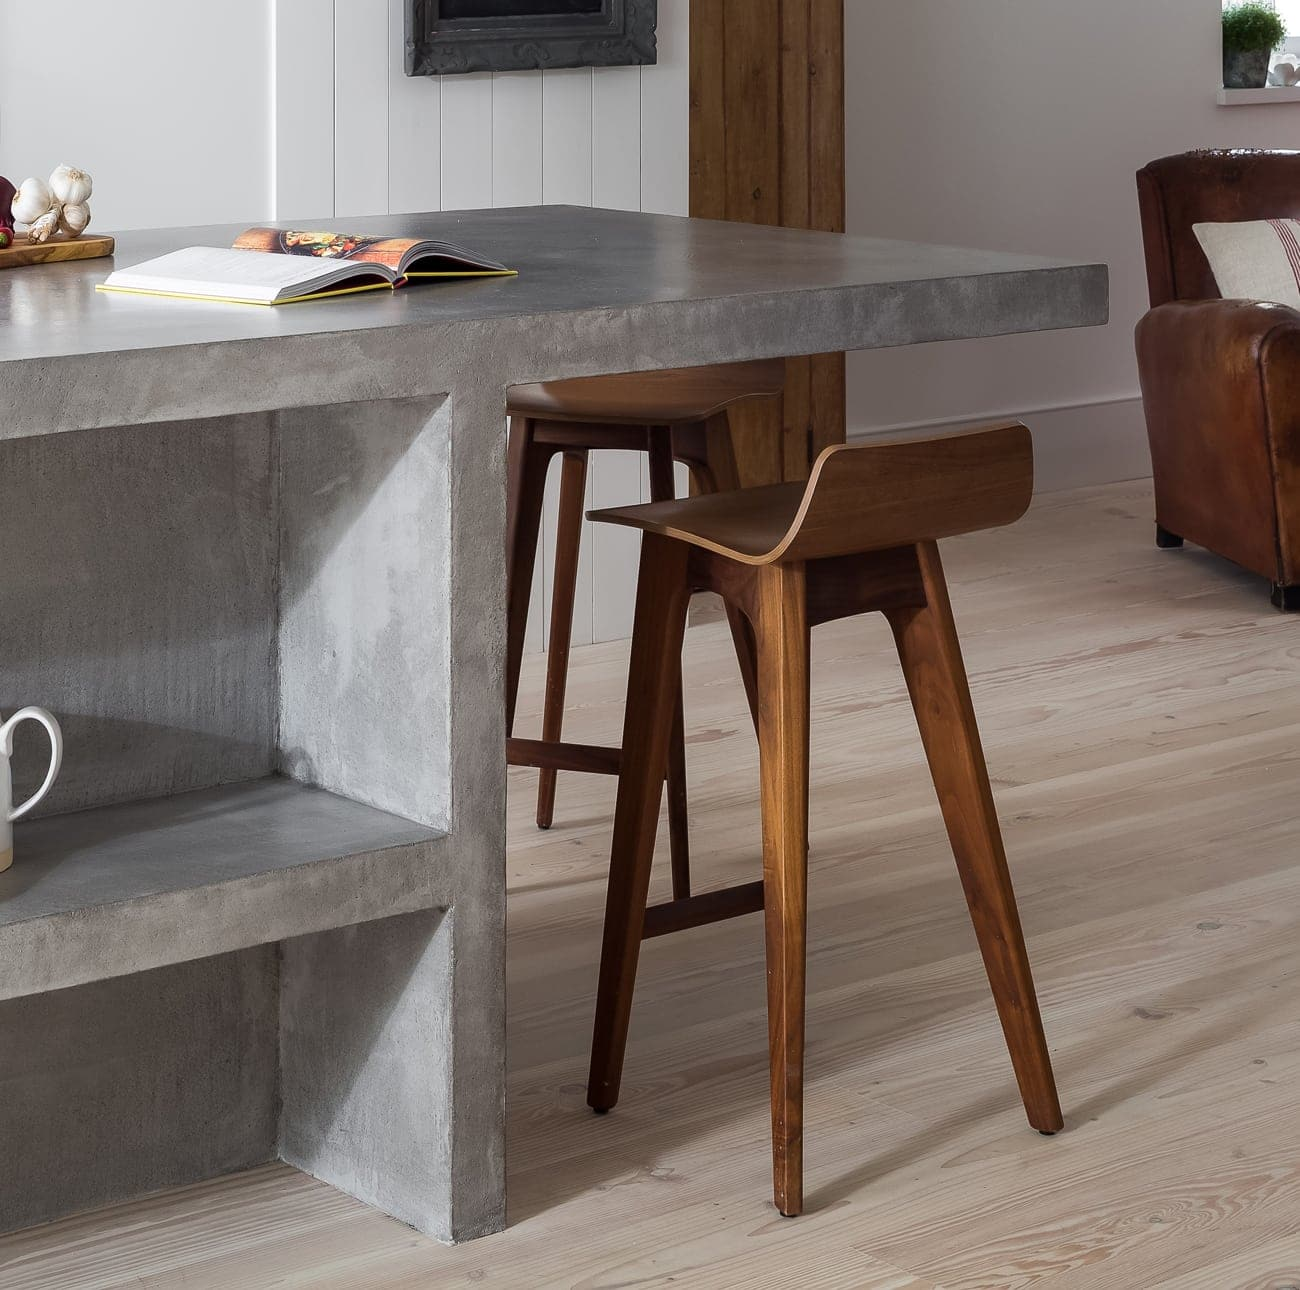 Light wood chairs under cement table